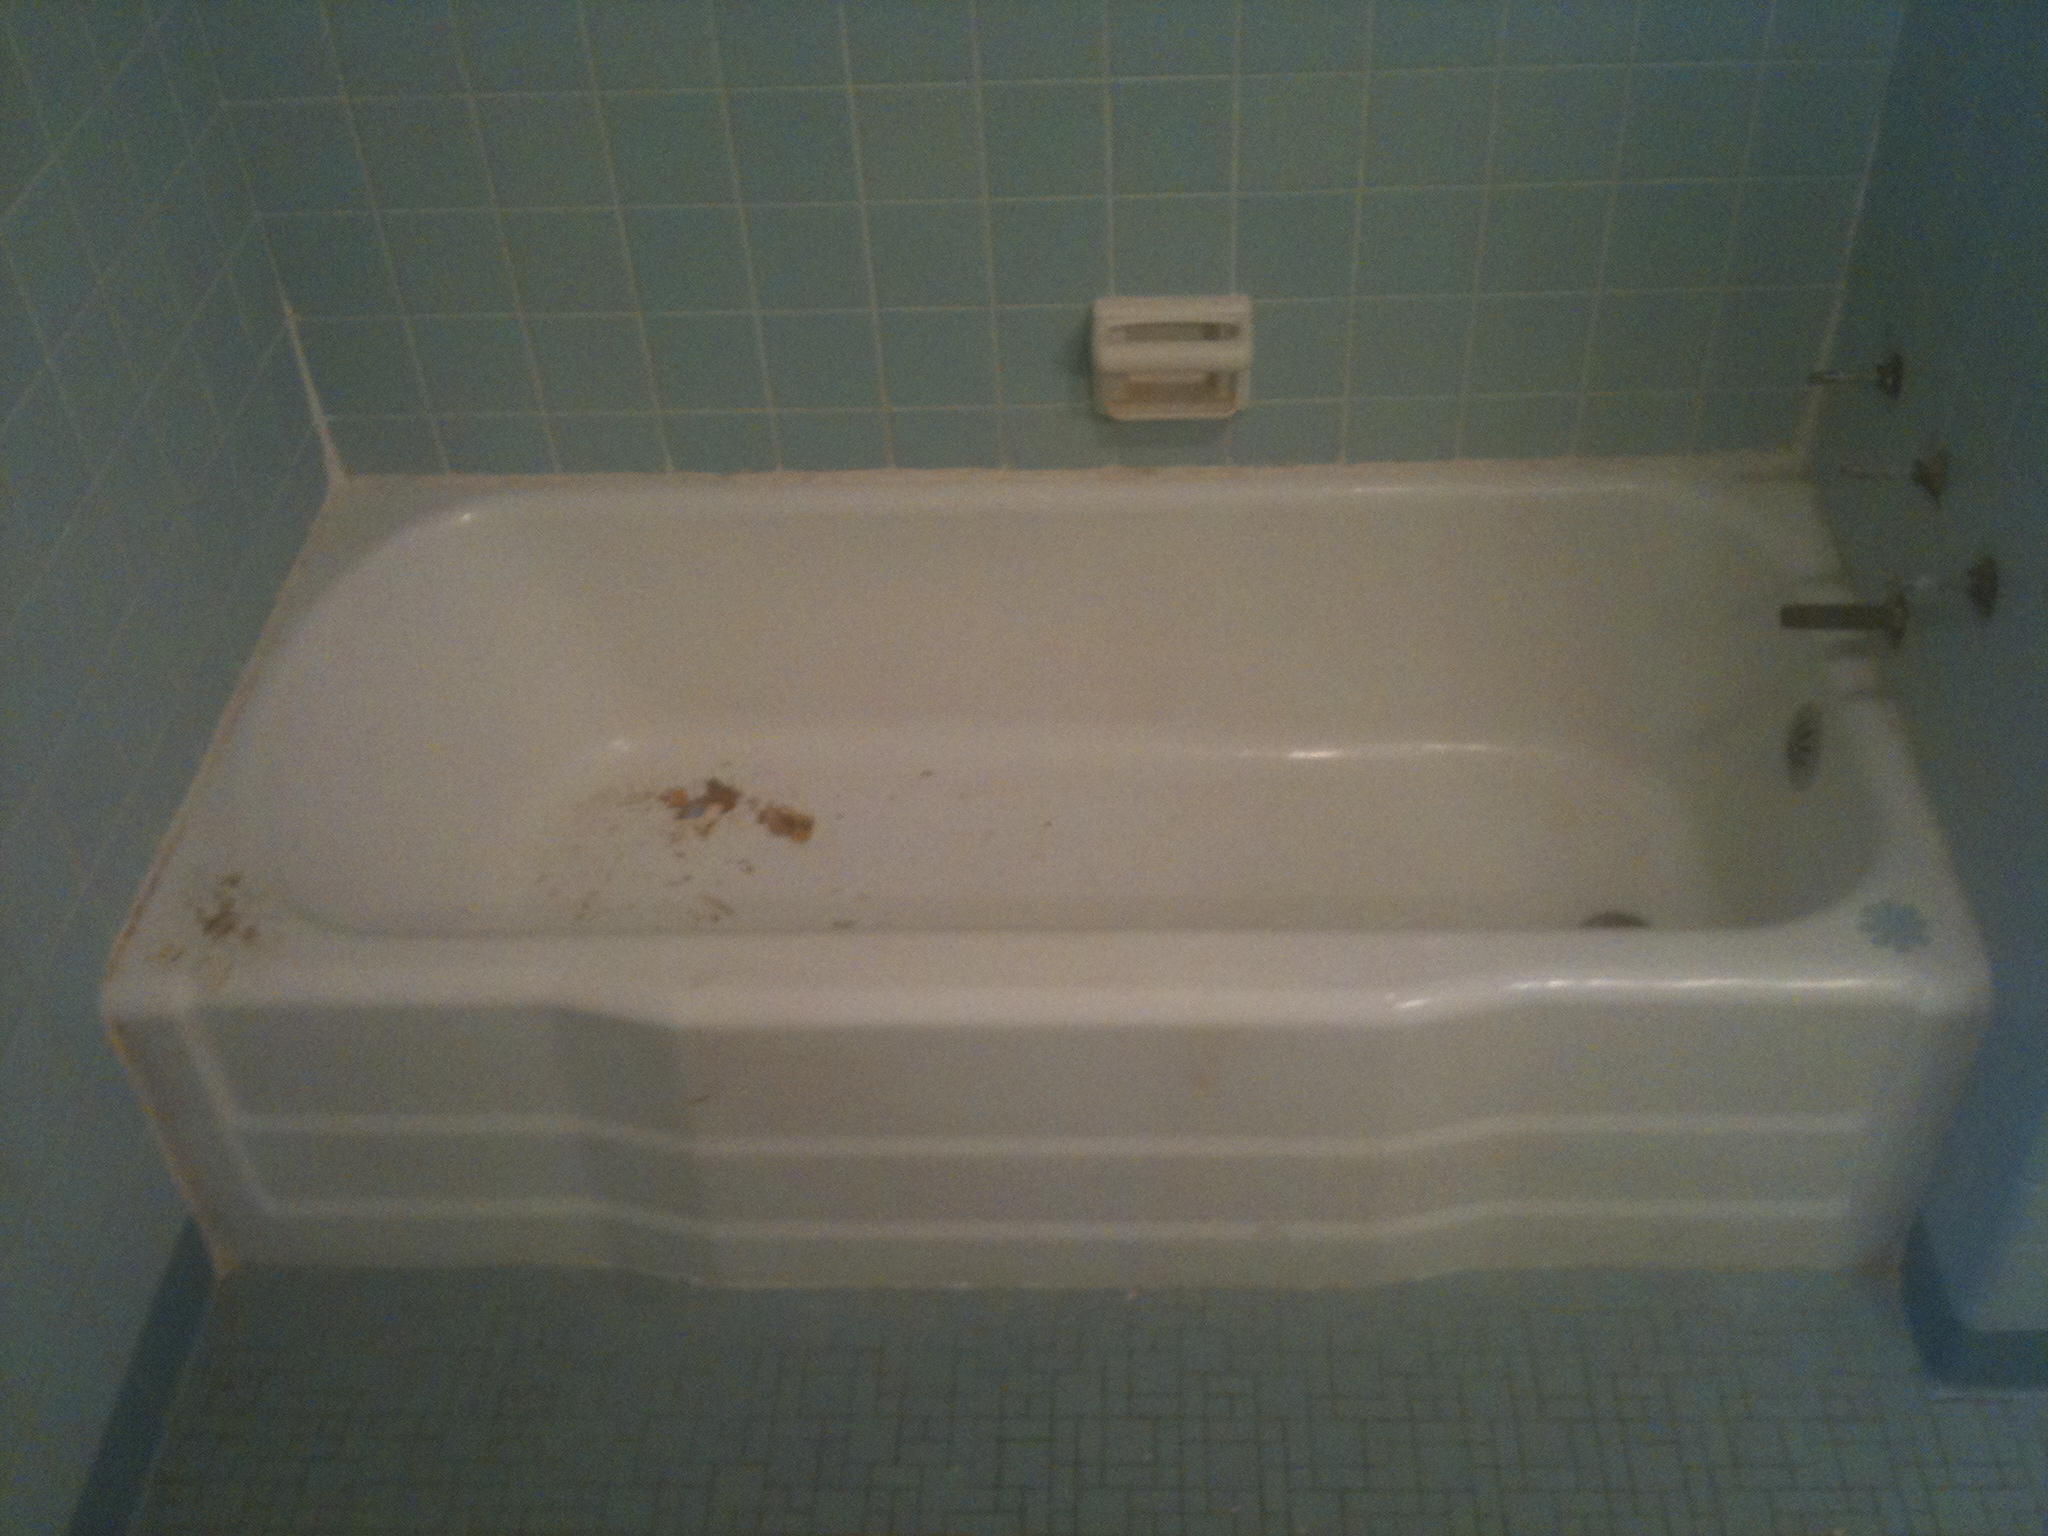 Bathtub Refinishing For Savannah Pooler Richmond Hill Hinesville - Bathtub removal and installation cost